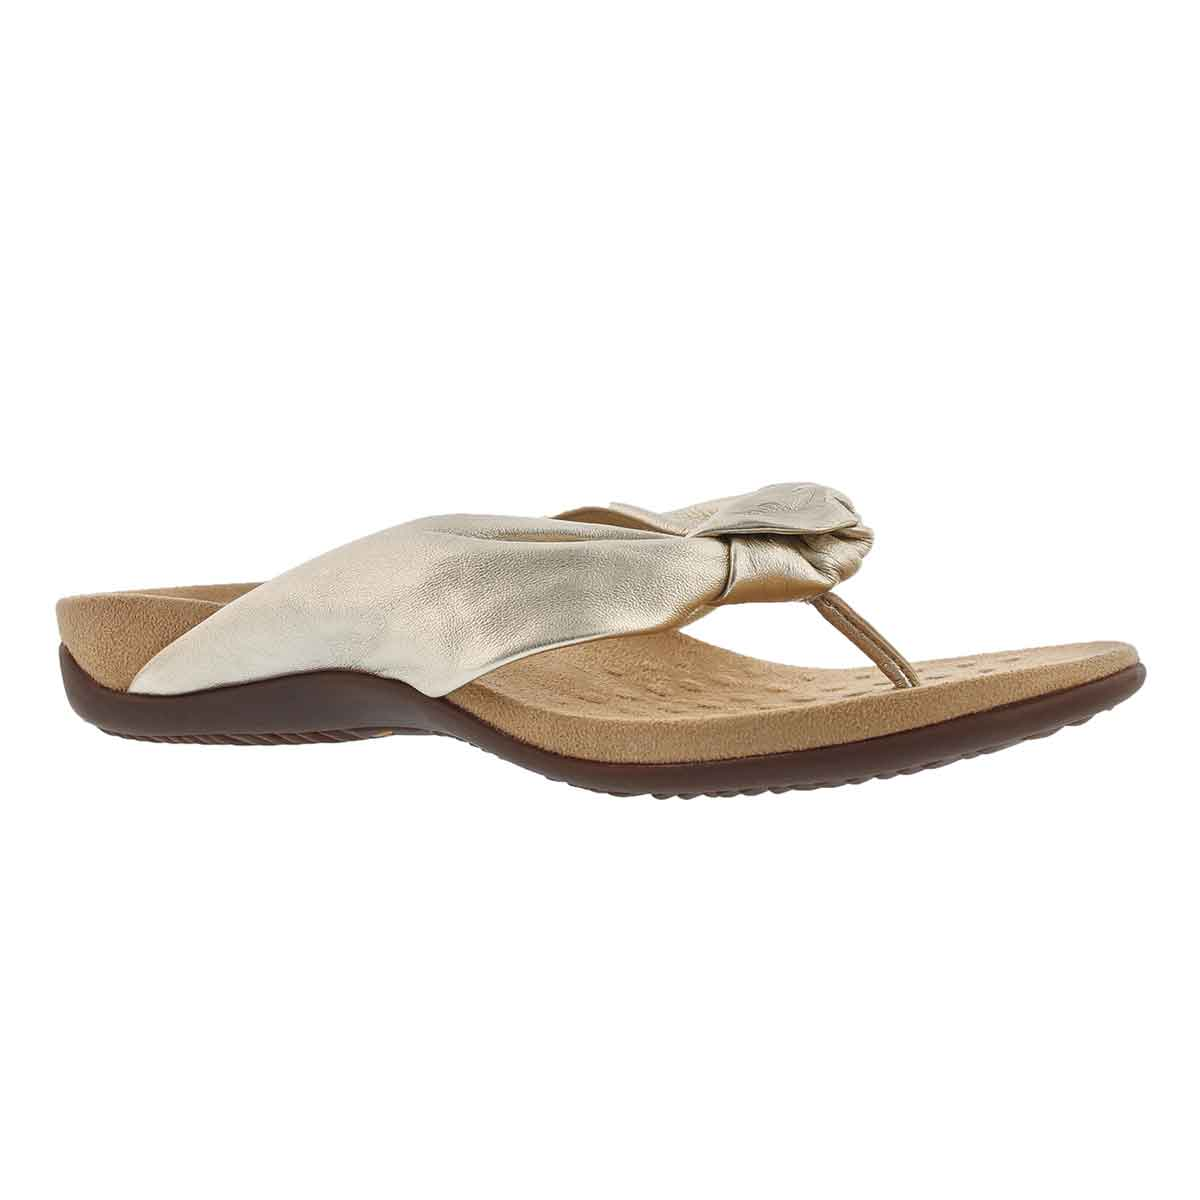 Women's PIPPA champagne arch supprt thong sandals